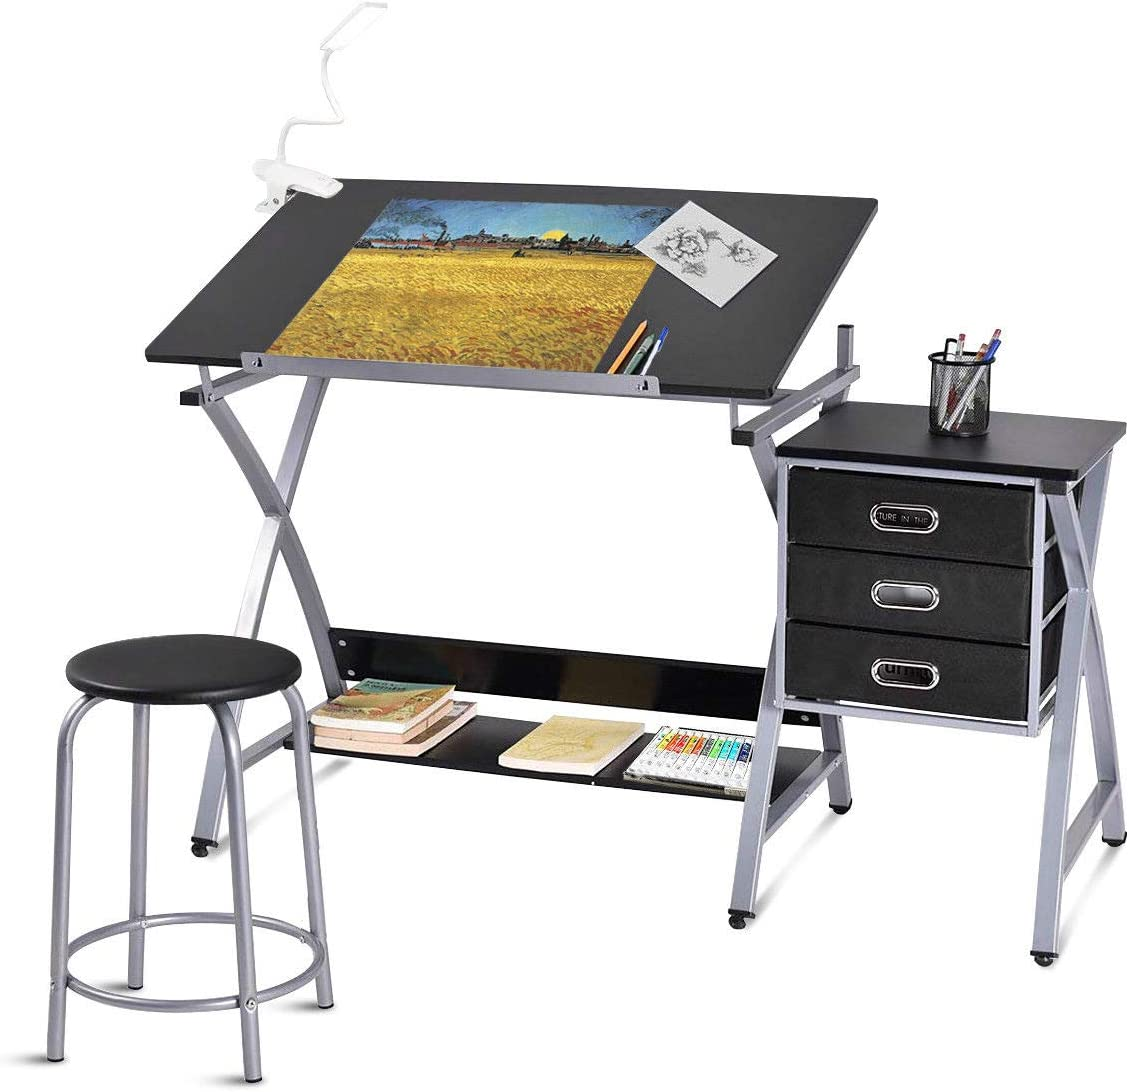 Tangkula Drafting Table Art Craft Drawing Desk Art Hobby Folding Adjustable w Stool Black